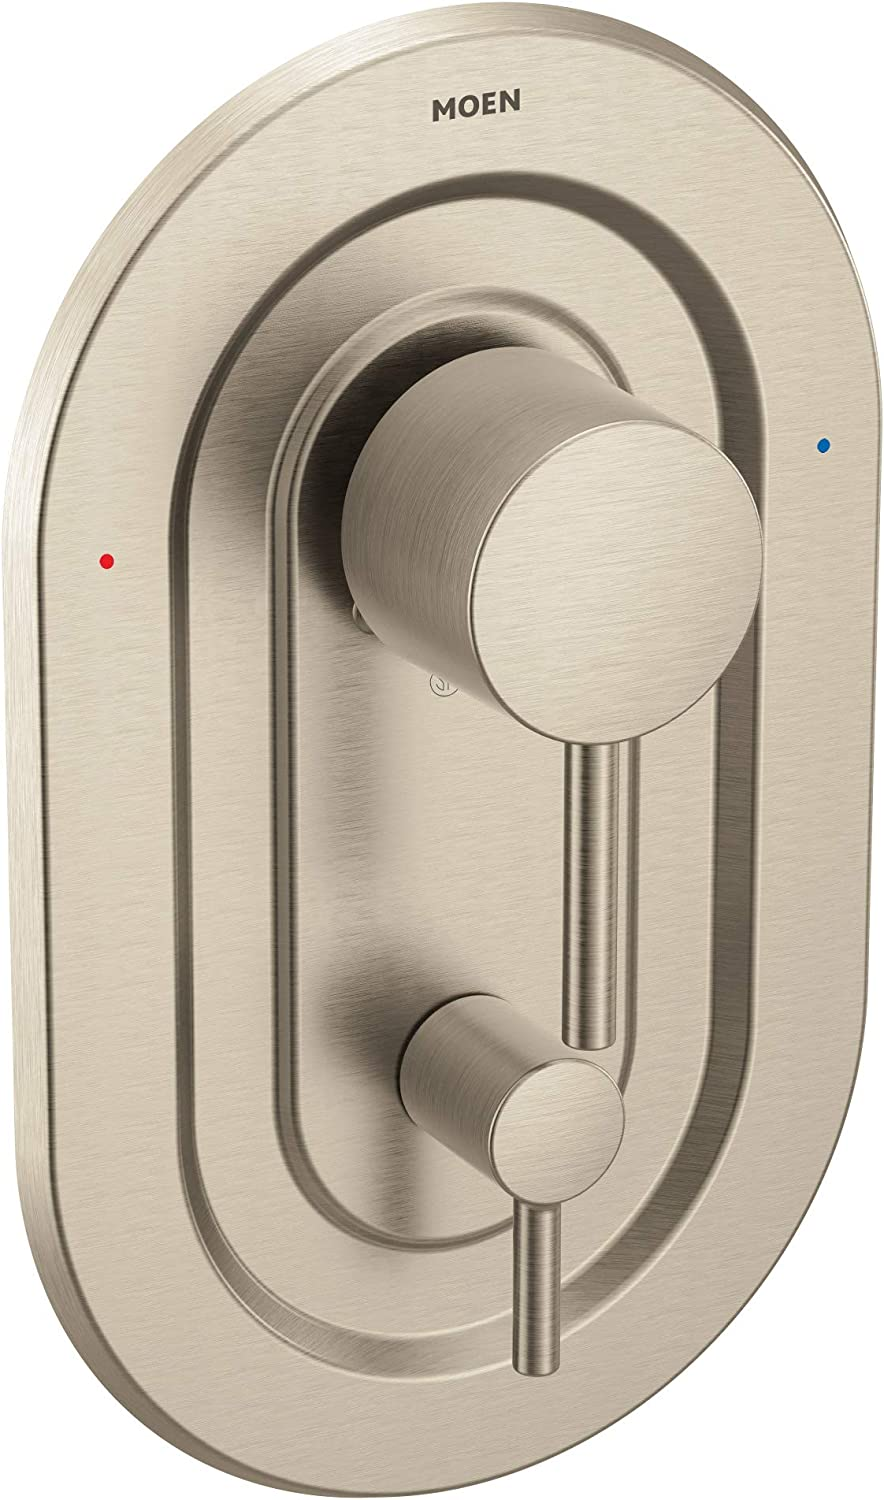 Moen T2190BN Align Posi-Temp with Built-in 3-Function Transfer Valve Trim Kit, Valve Required, Brushed Nickel